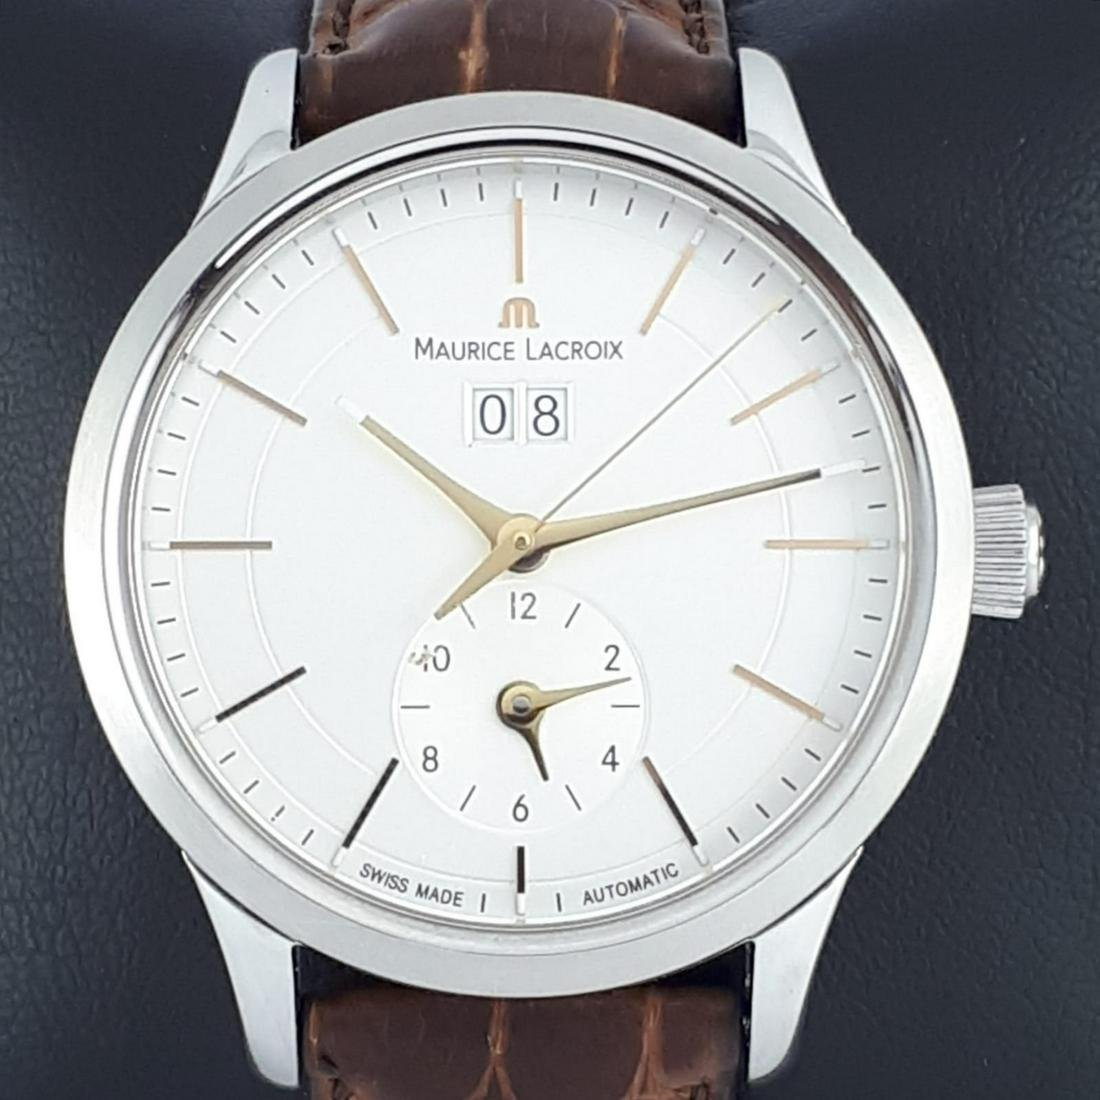 Maurice Lacroix - World Time Automatic - Ref: LC6088 -